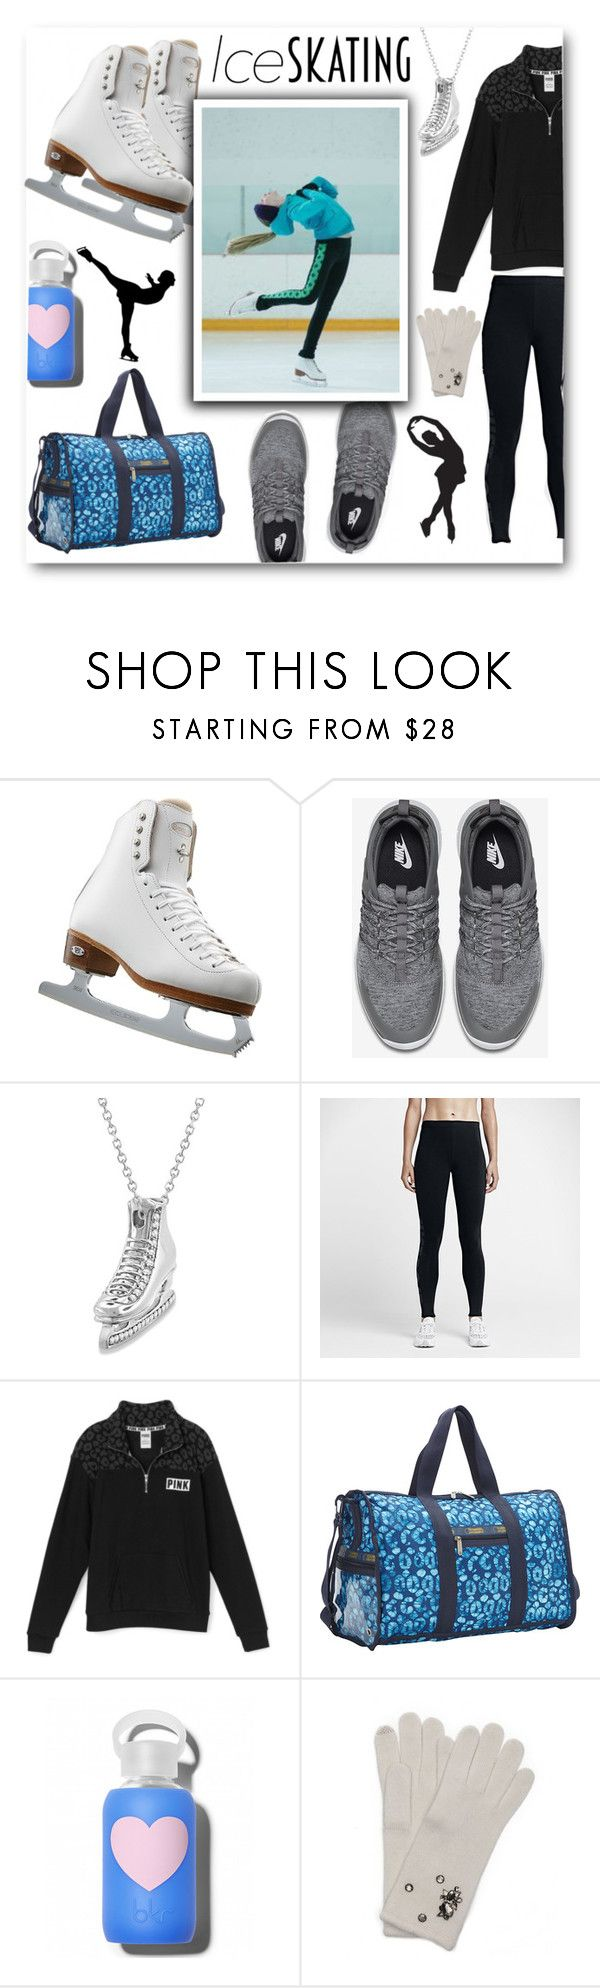 """""""Figure Skating Training Wear"""" by voguefashion101 ❤ liked on Polyvore featuring Riedell, NIKE, Allurez, LeSportsac, bkr and Wyatt"""